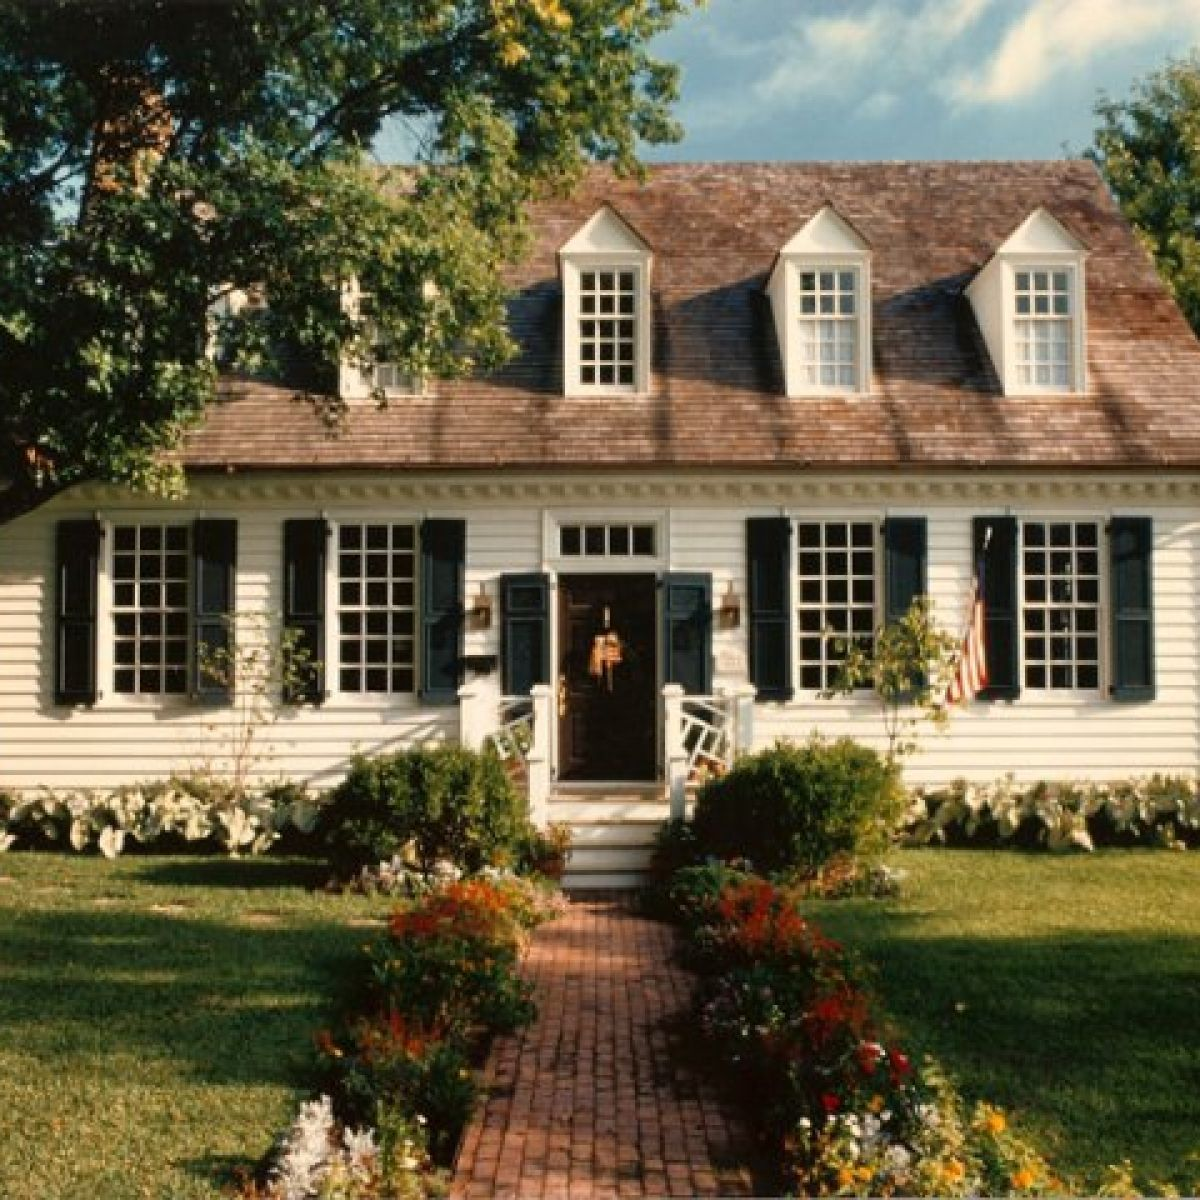 Historical Williamsburg Design By Steve Chambers Registered Architect In Texas And Oklahoma Colonial House Exteriors Colonial House Plans Colonial House